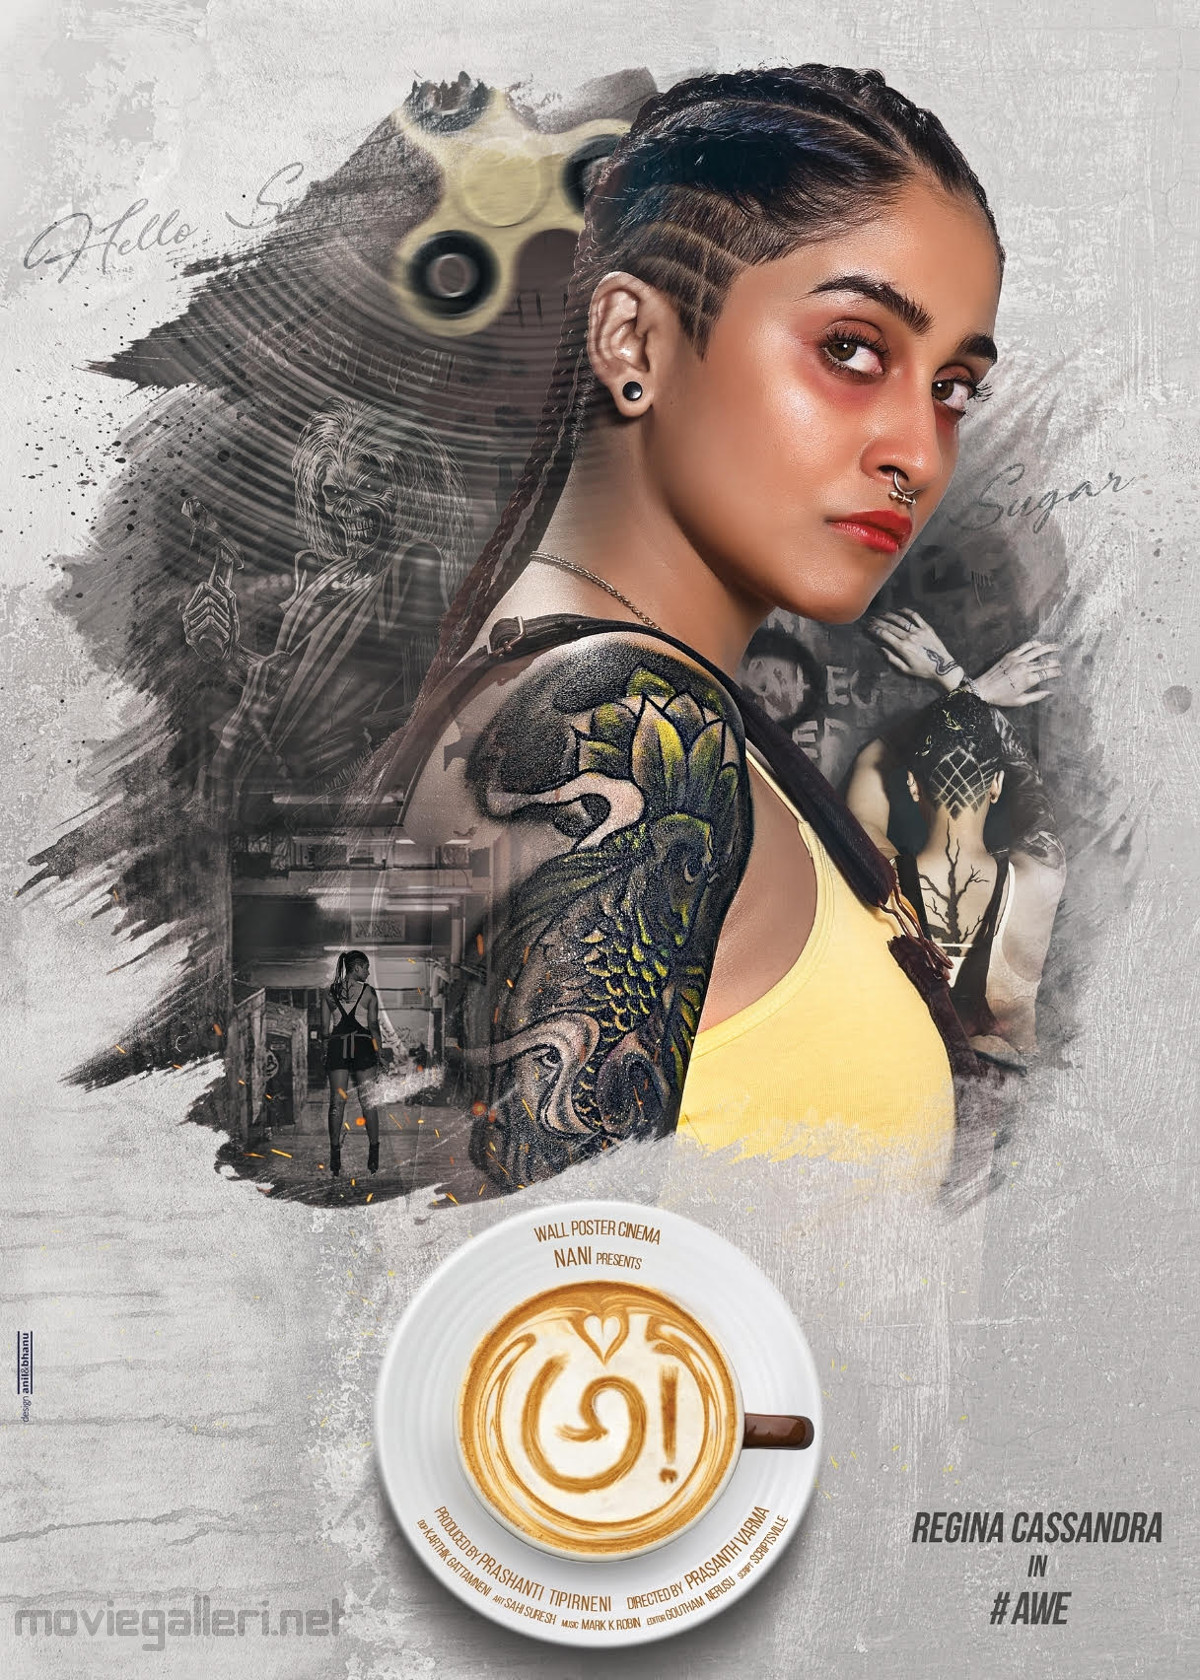 Telugu Actress Regina Cassandra AWE Movie Poster HD